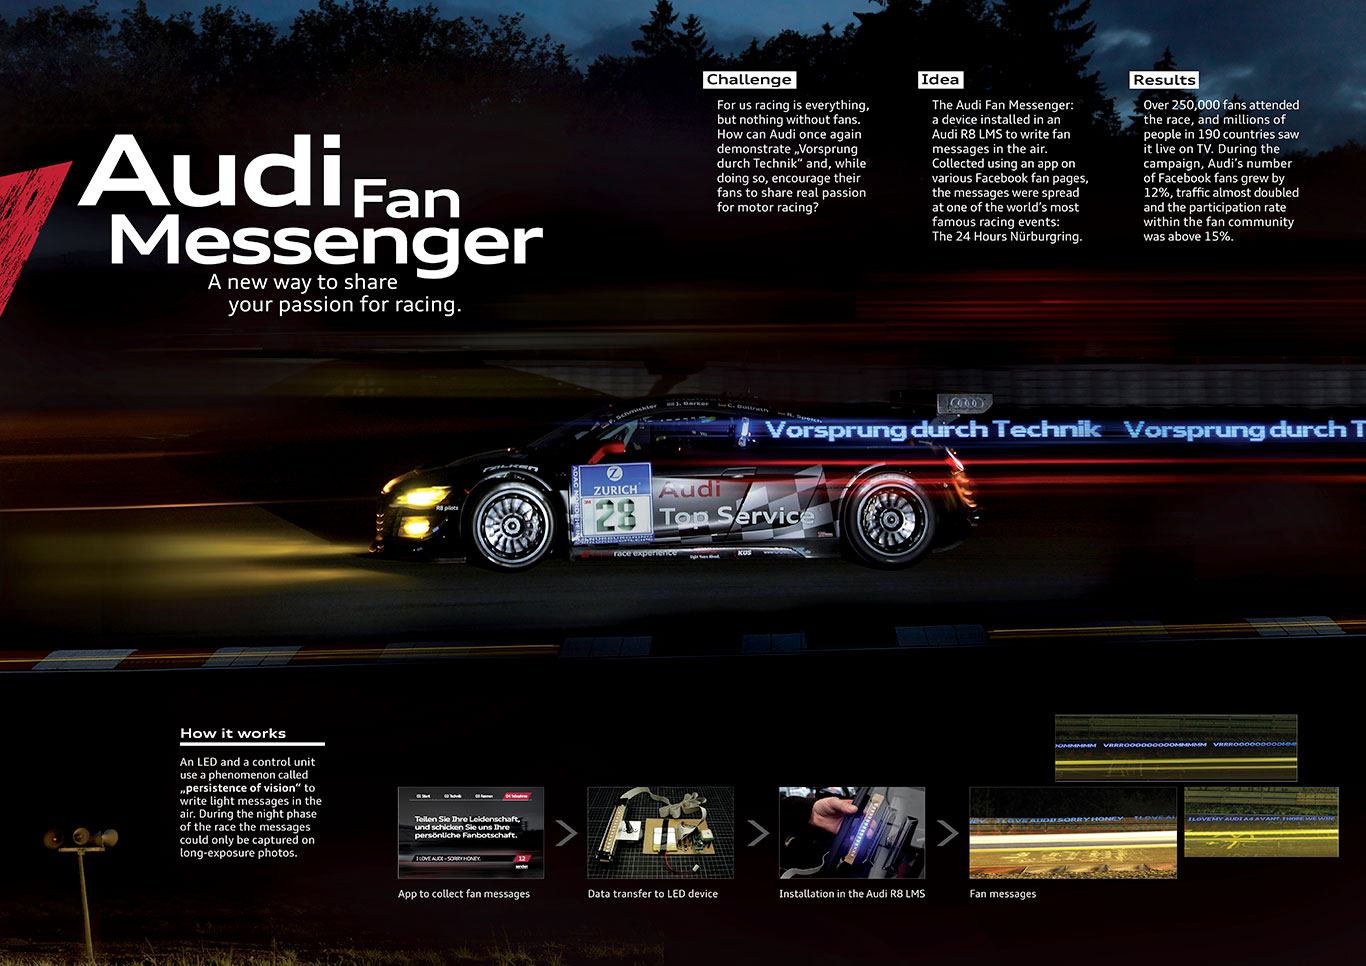 1-Audi-Fan-Messenger-Board